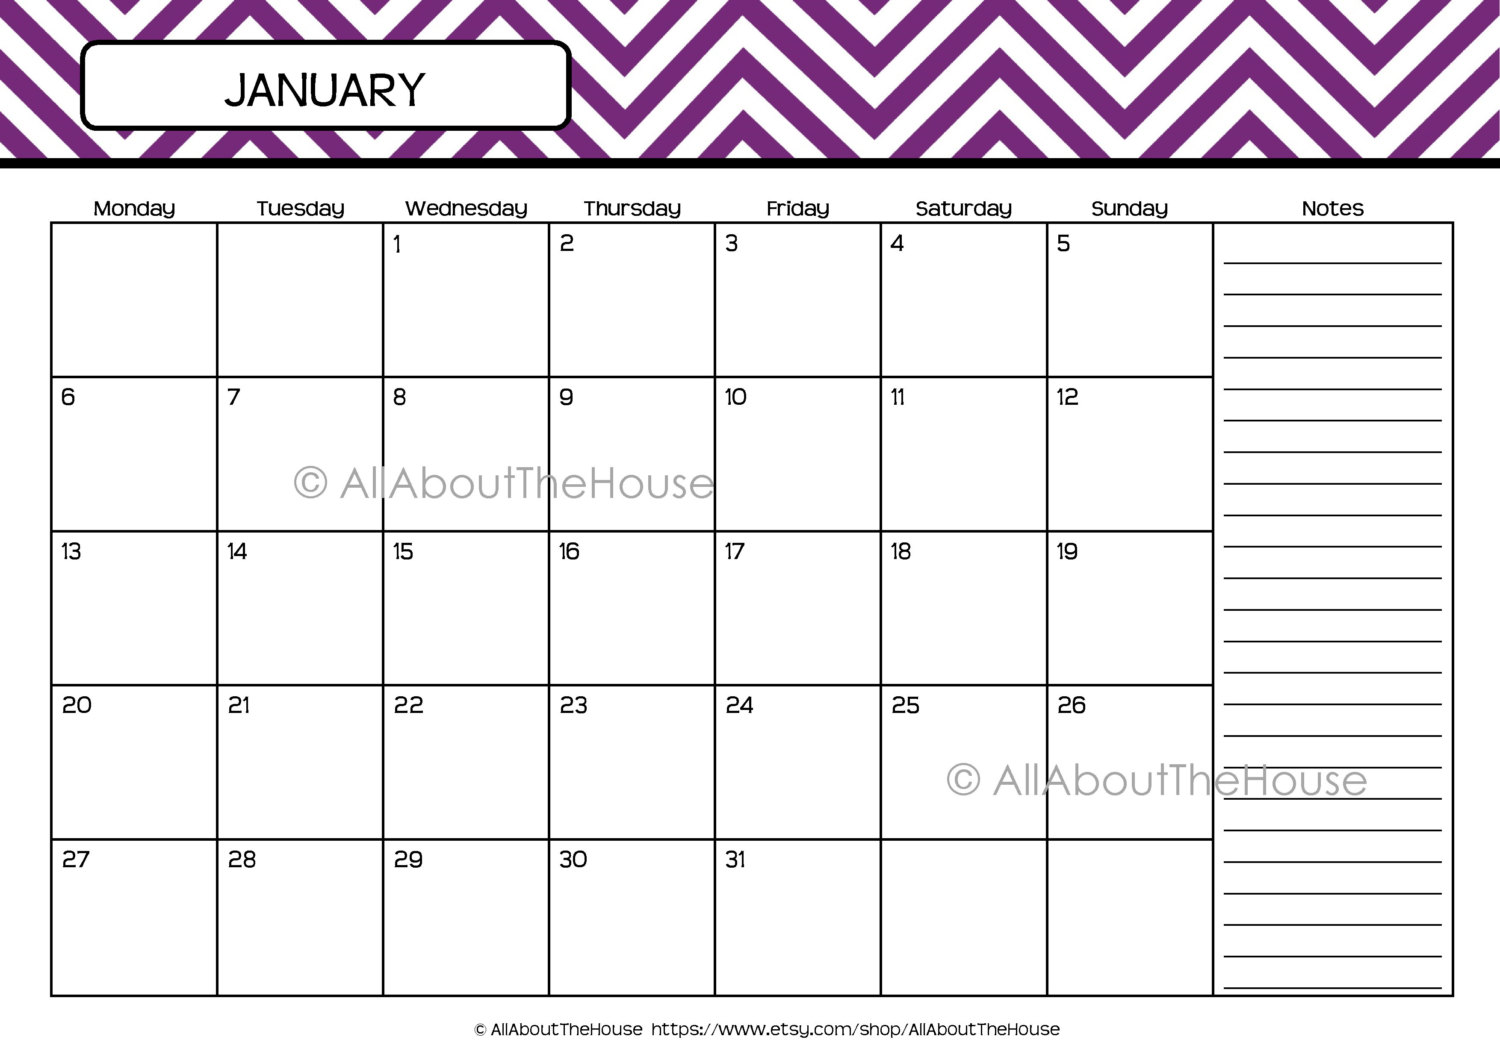 January 2016 month clipart svg January 2016 meal of the month clipart color free - ClipartFox svg